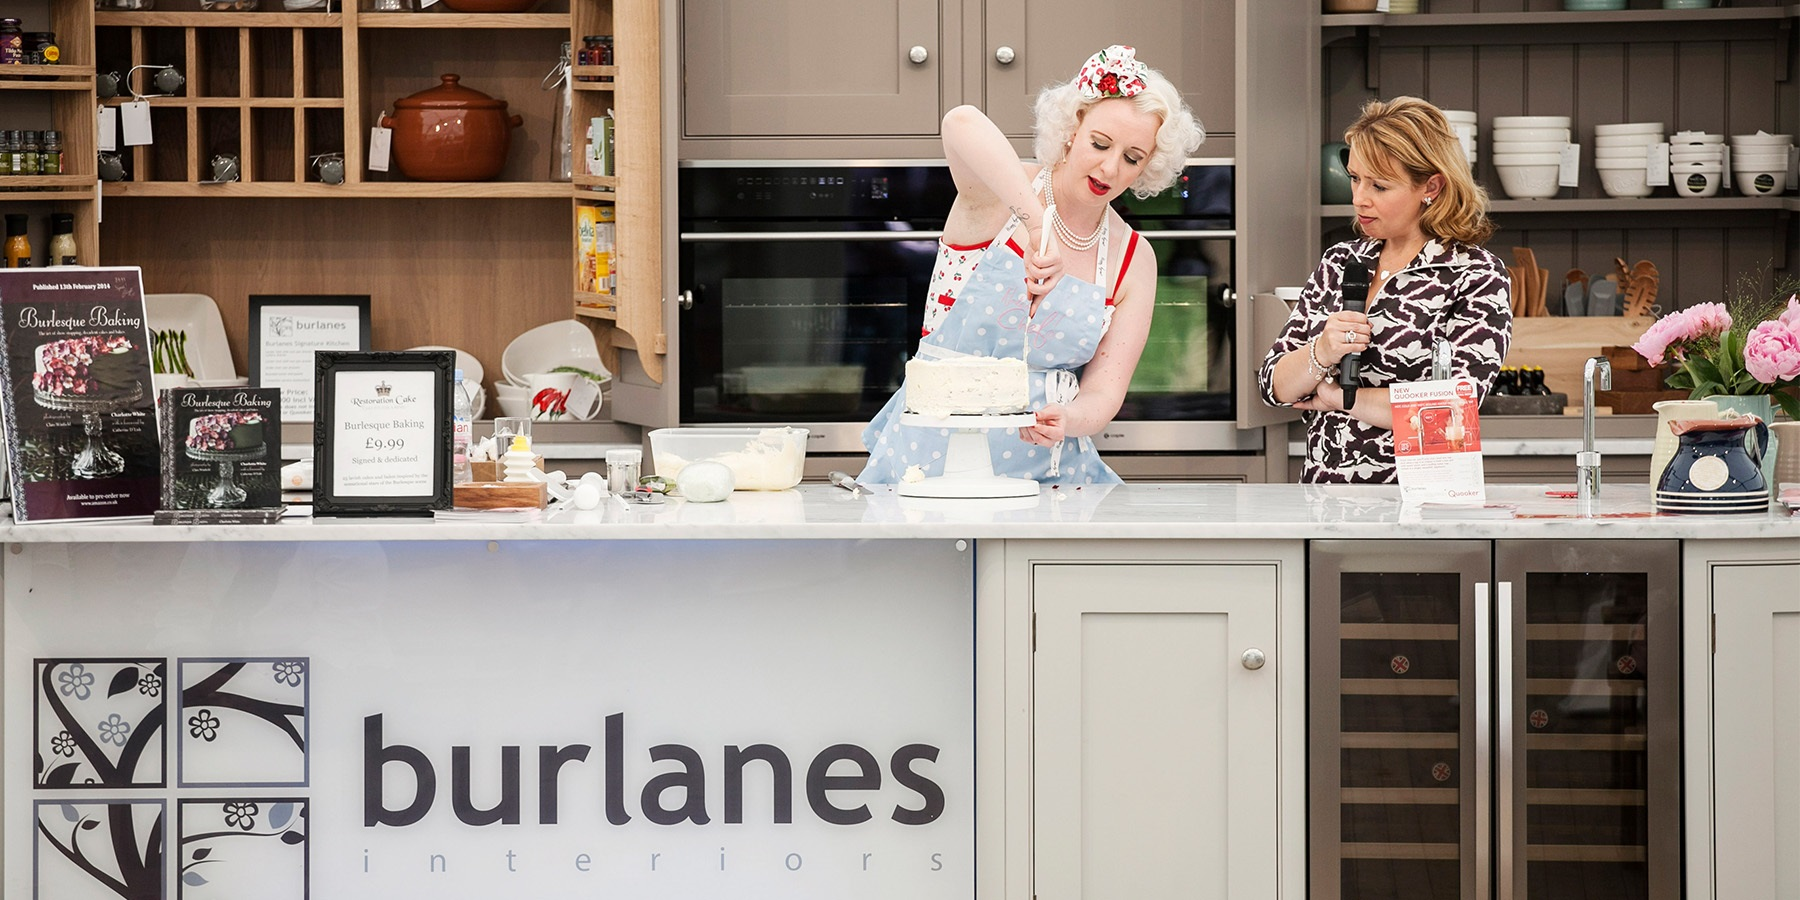 Burlanes Interiors - Community and promotional events in Sevenoaks and Chelmsford